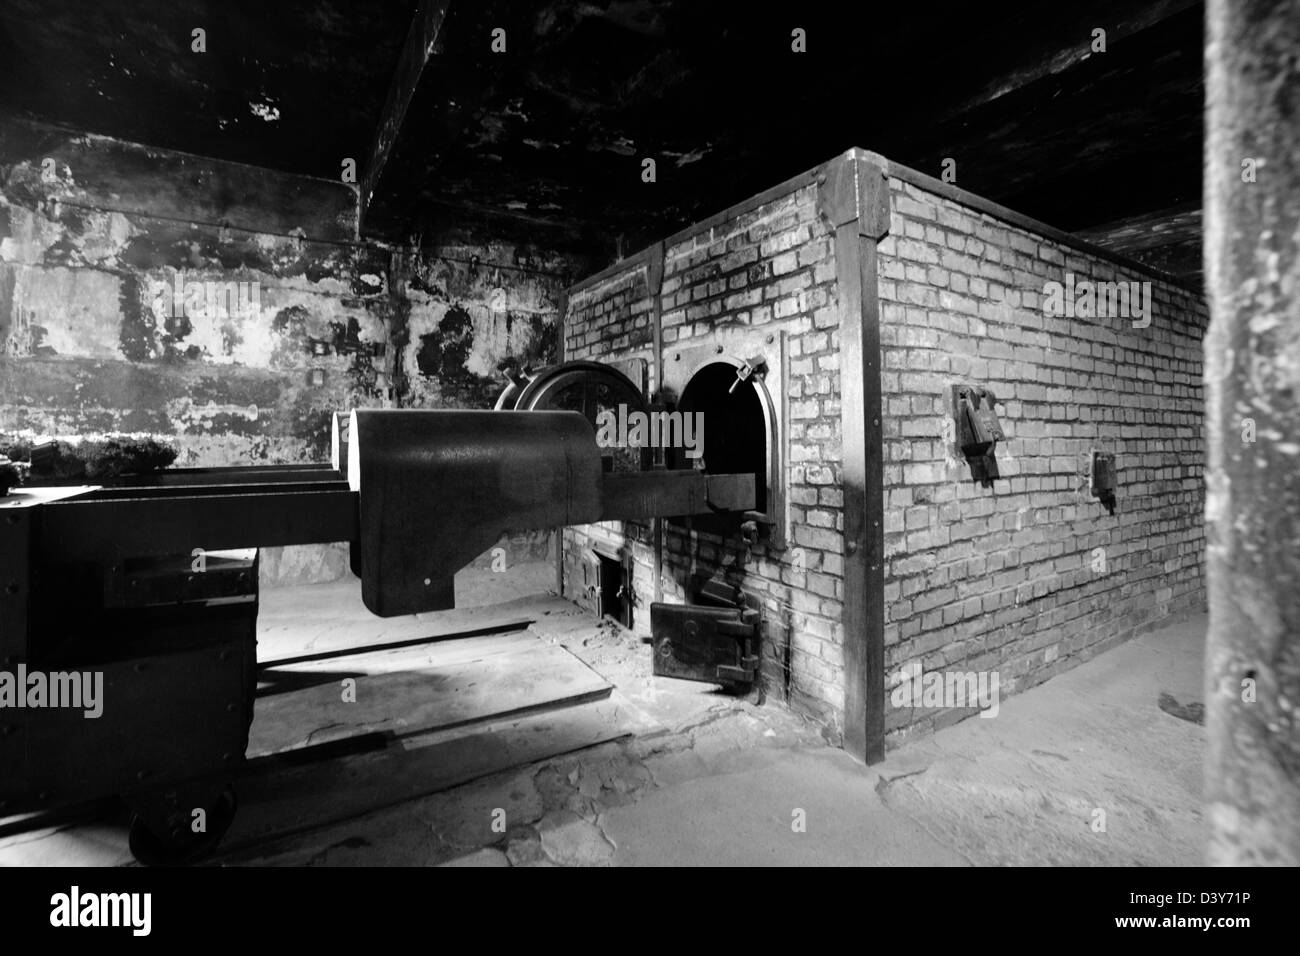 the crematoria oven in auschwitz nazi concentration camp